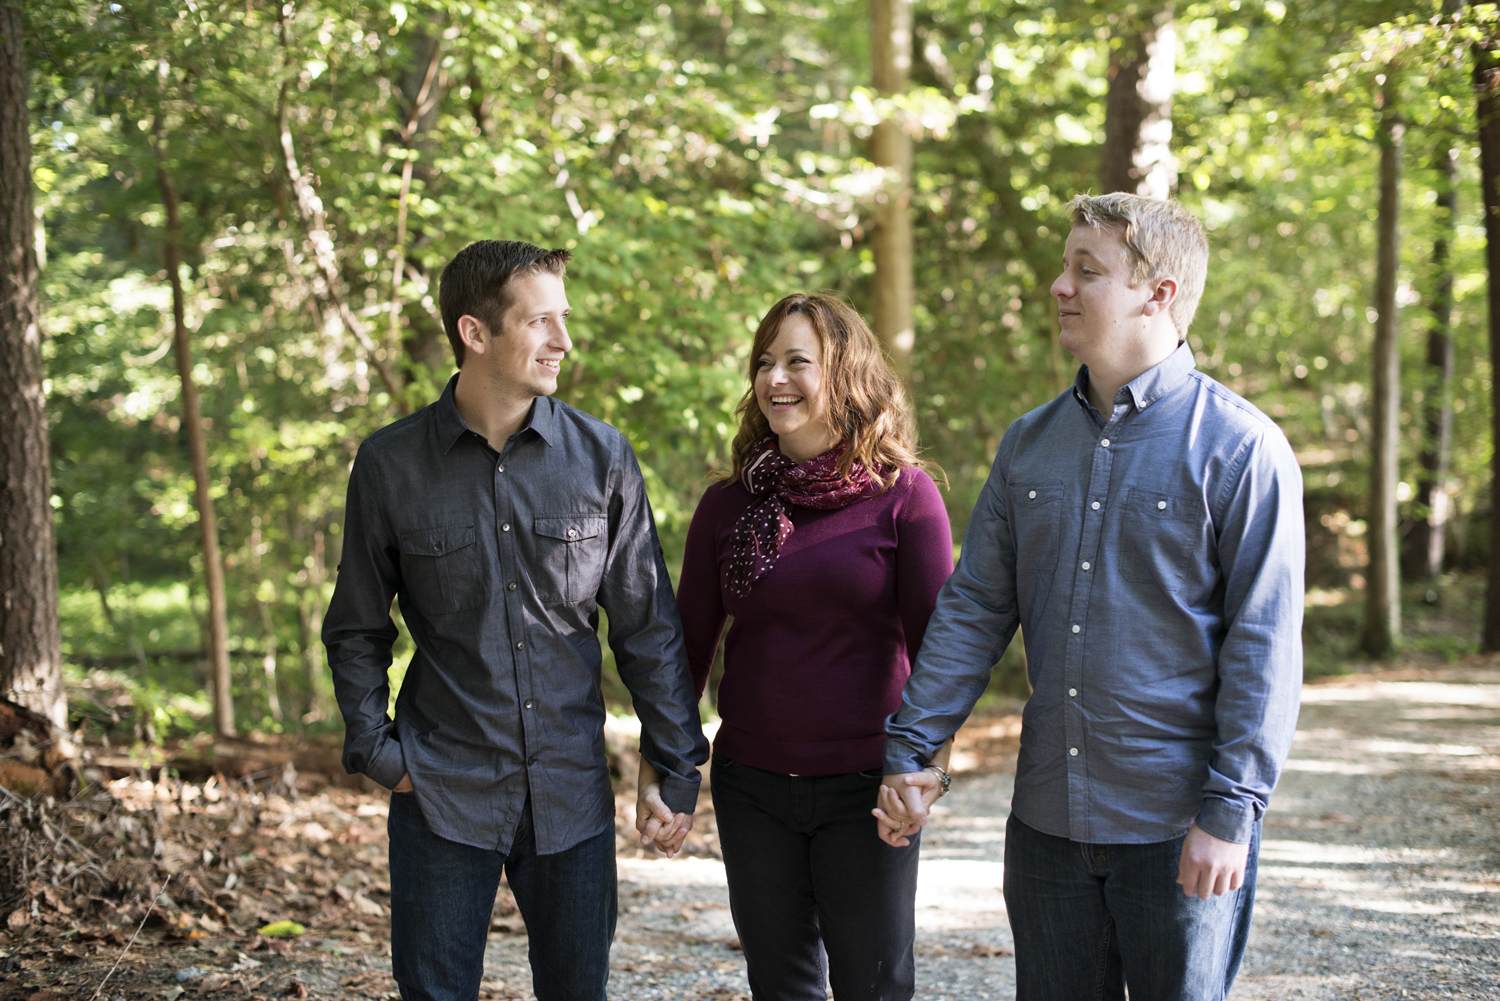 Windsor Castle Park fall family portraits in Smithfield, Virginia; a mother and her sons